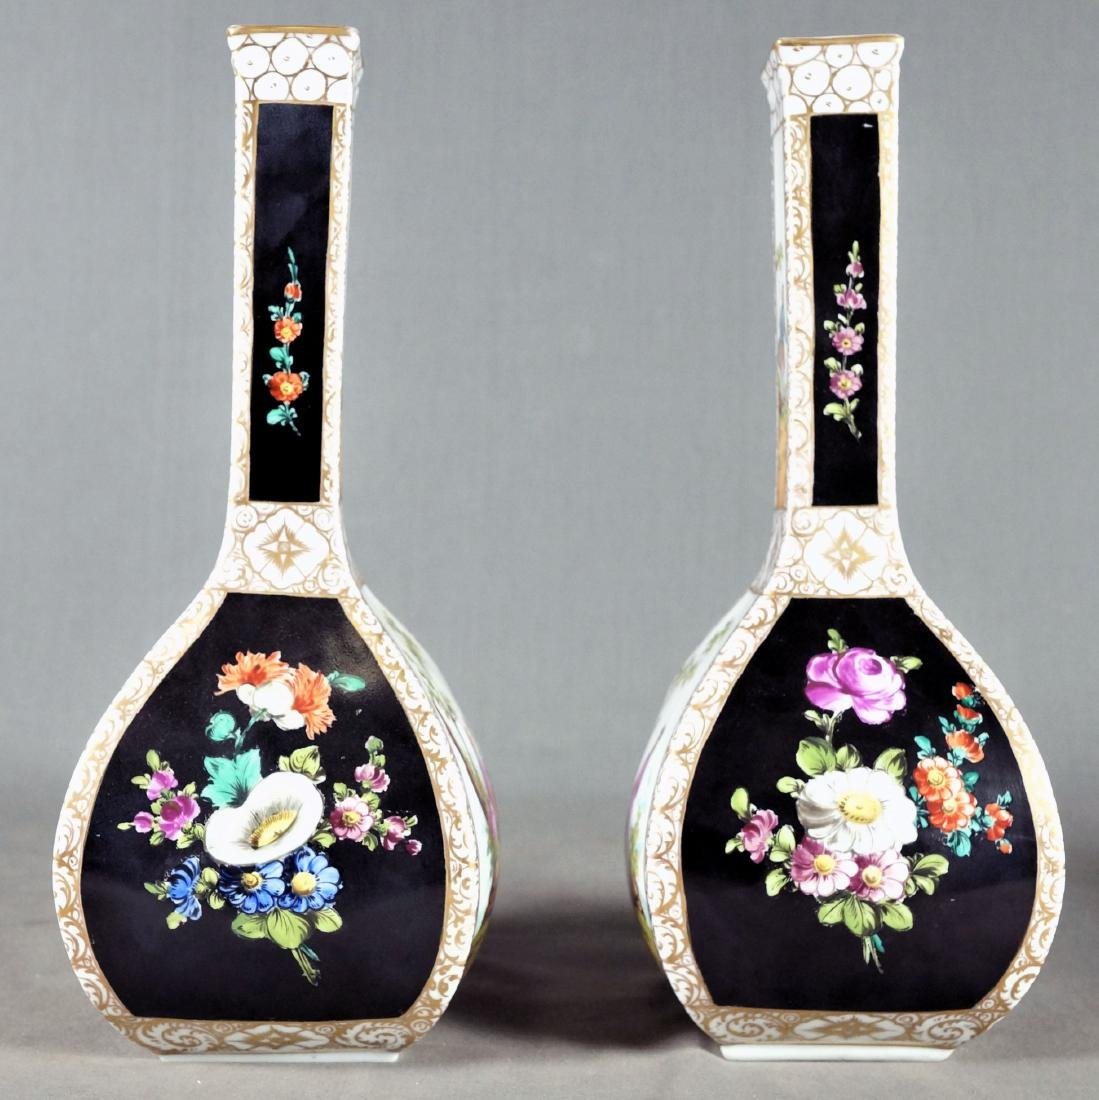 PAIR OF DRESDEN PORCELAIN VASES - 2